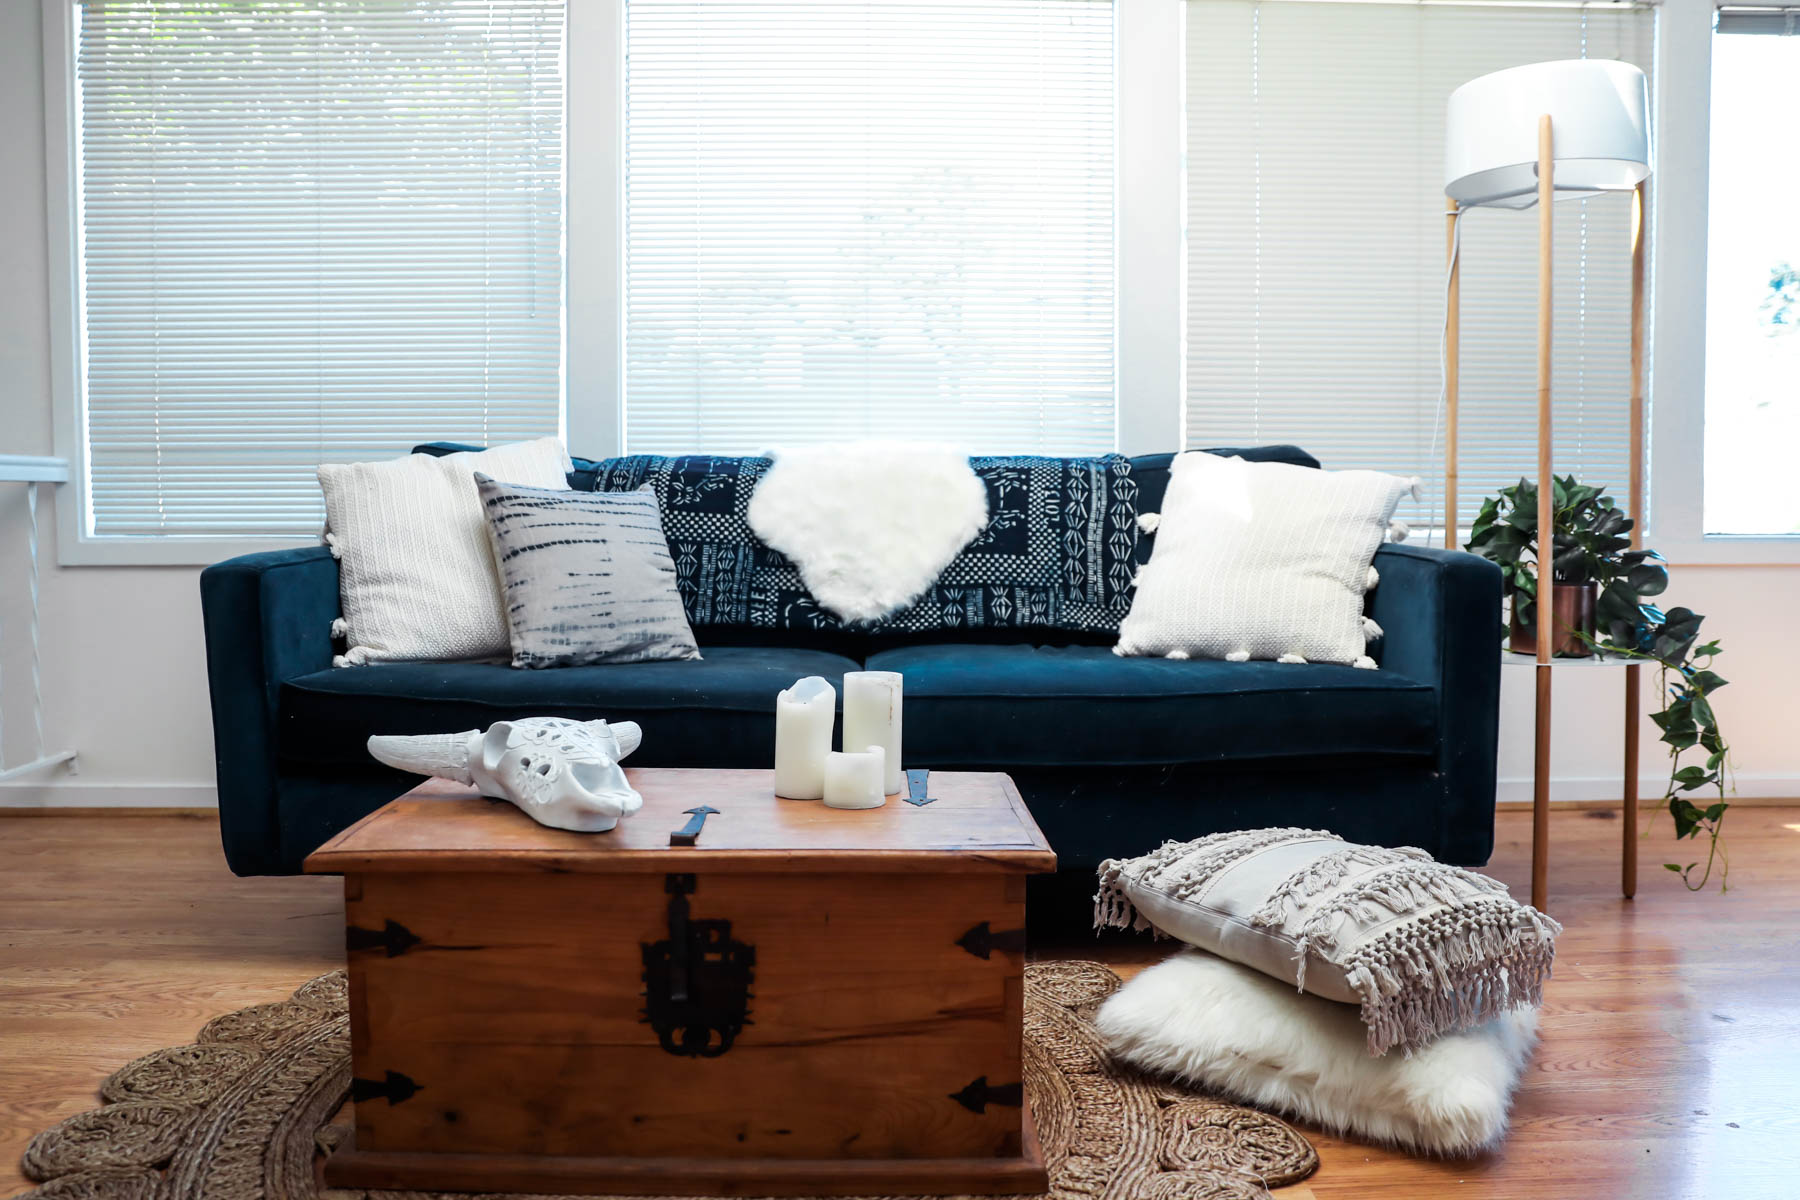 affordable living room decor from urban outfittershow to update your living room on a budget advice from a twenty